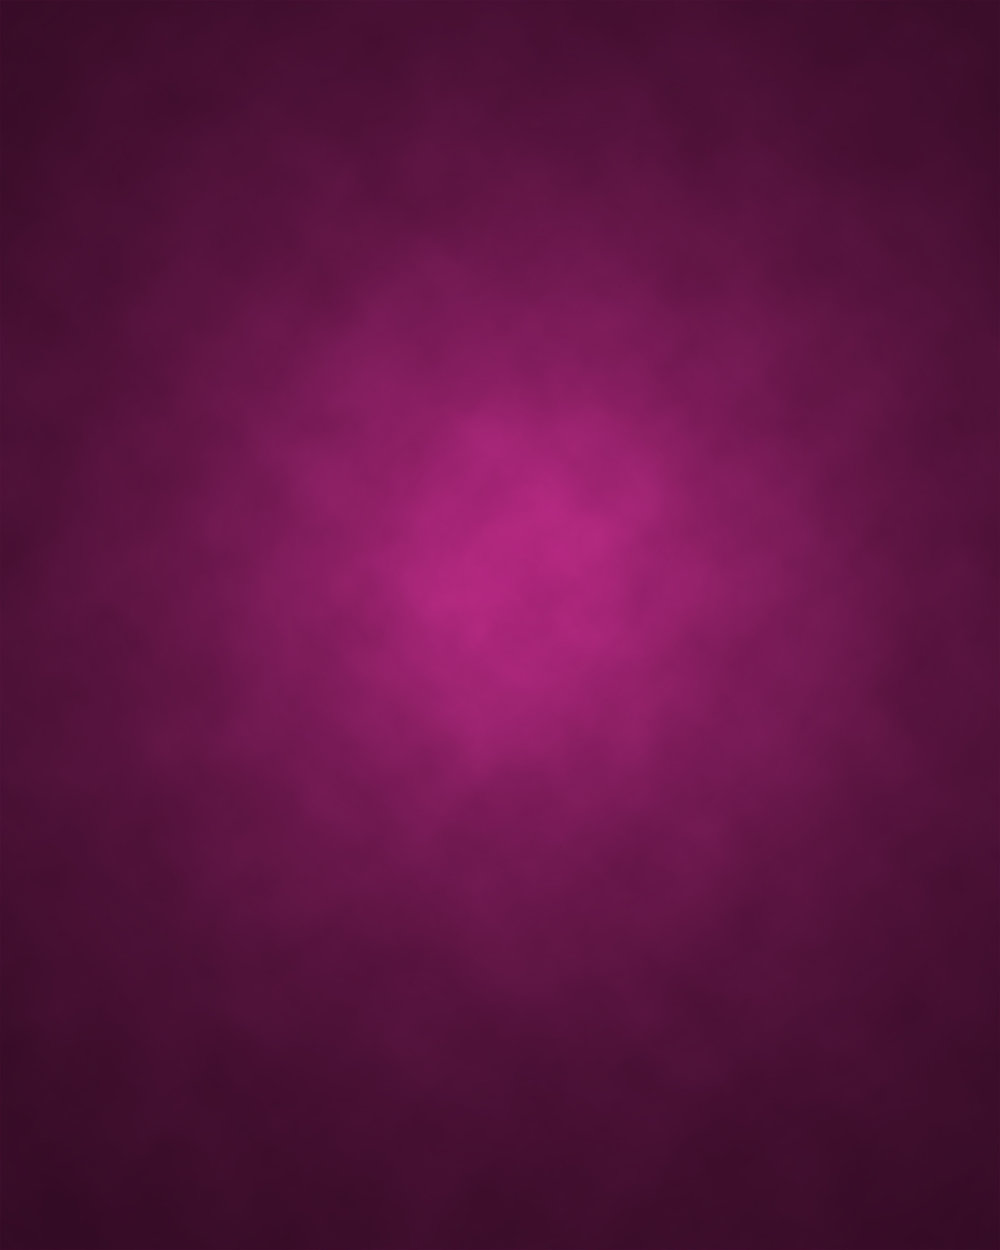 Background Option #10 - Magenta